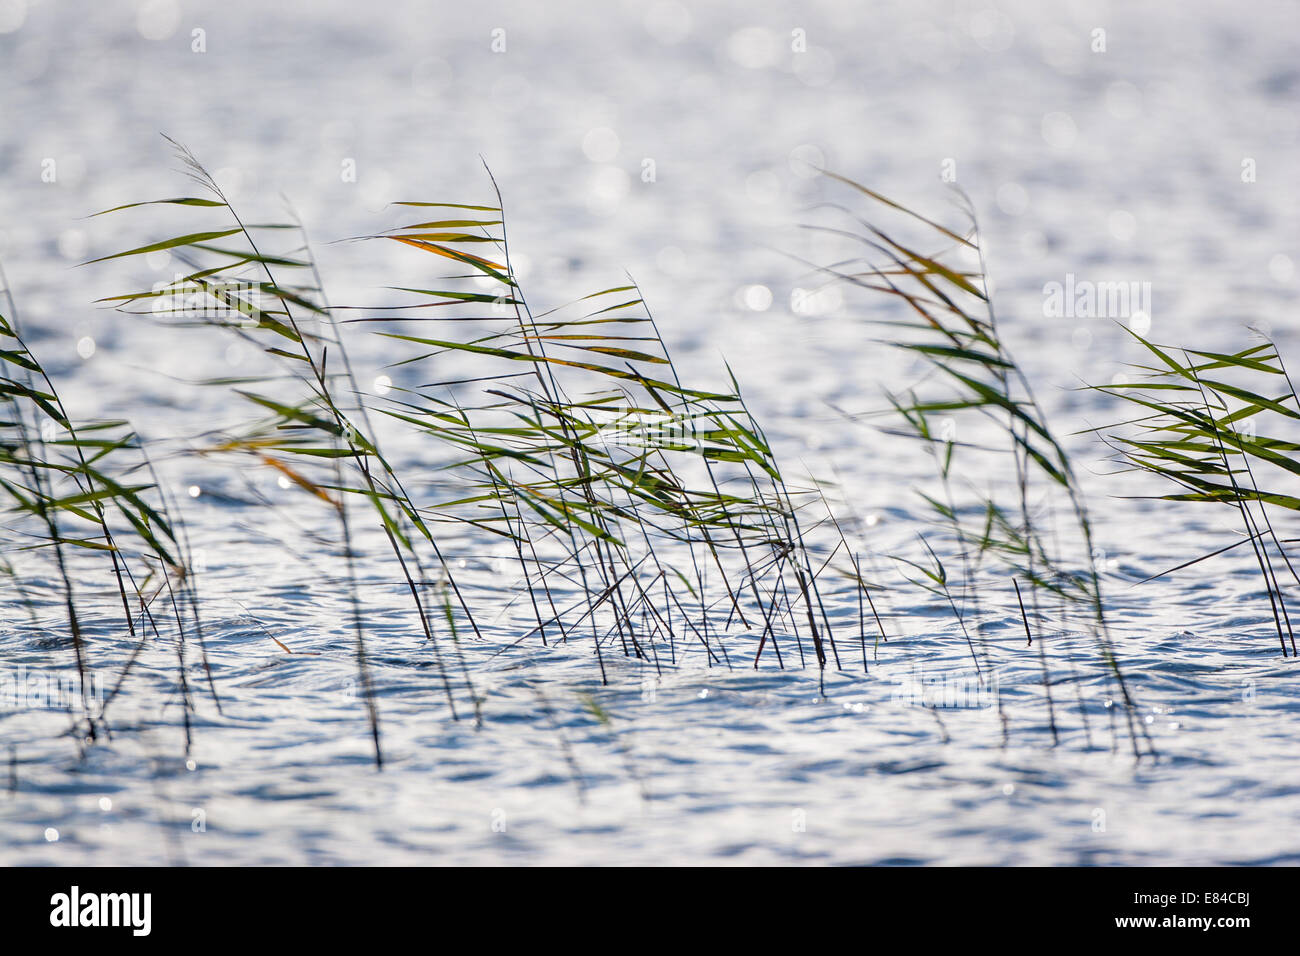 Reed waving in a breeze in the water. - Stock Image